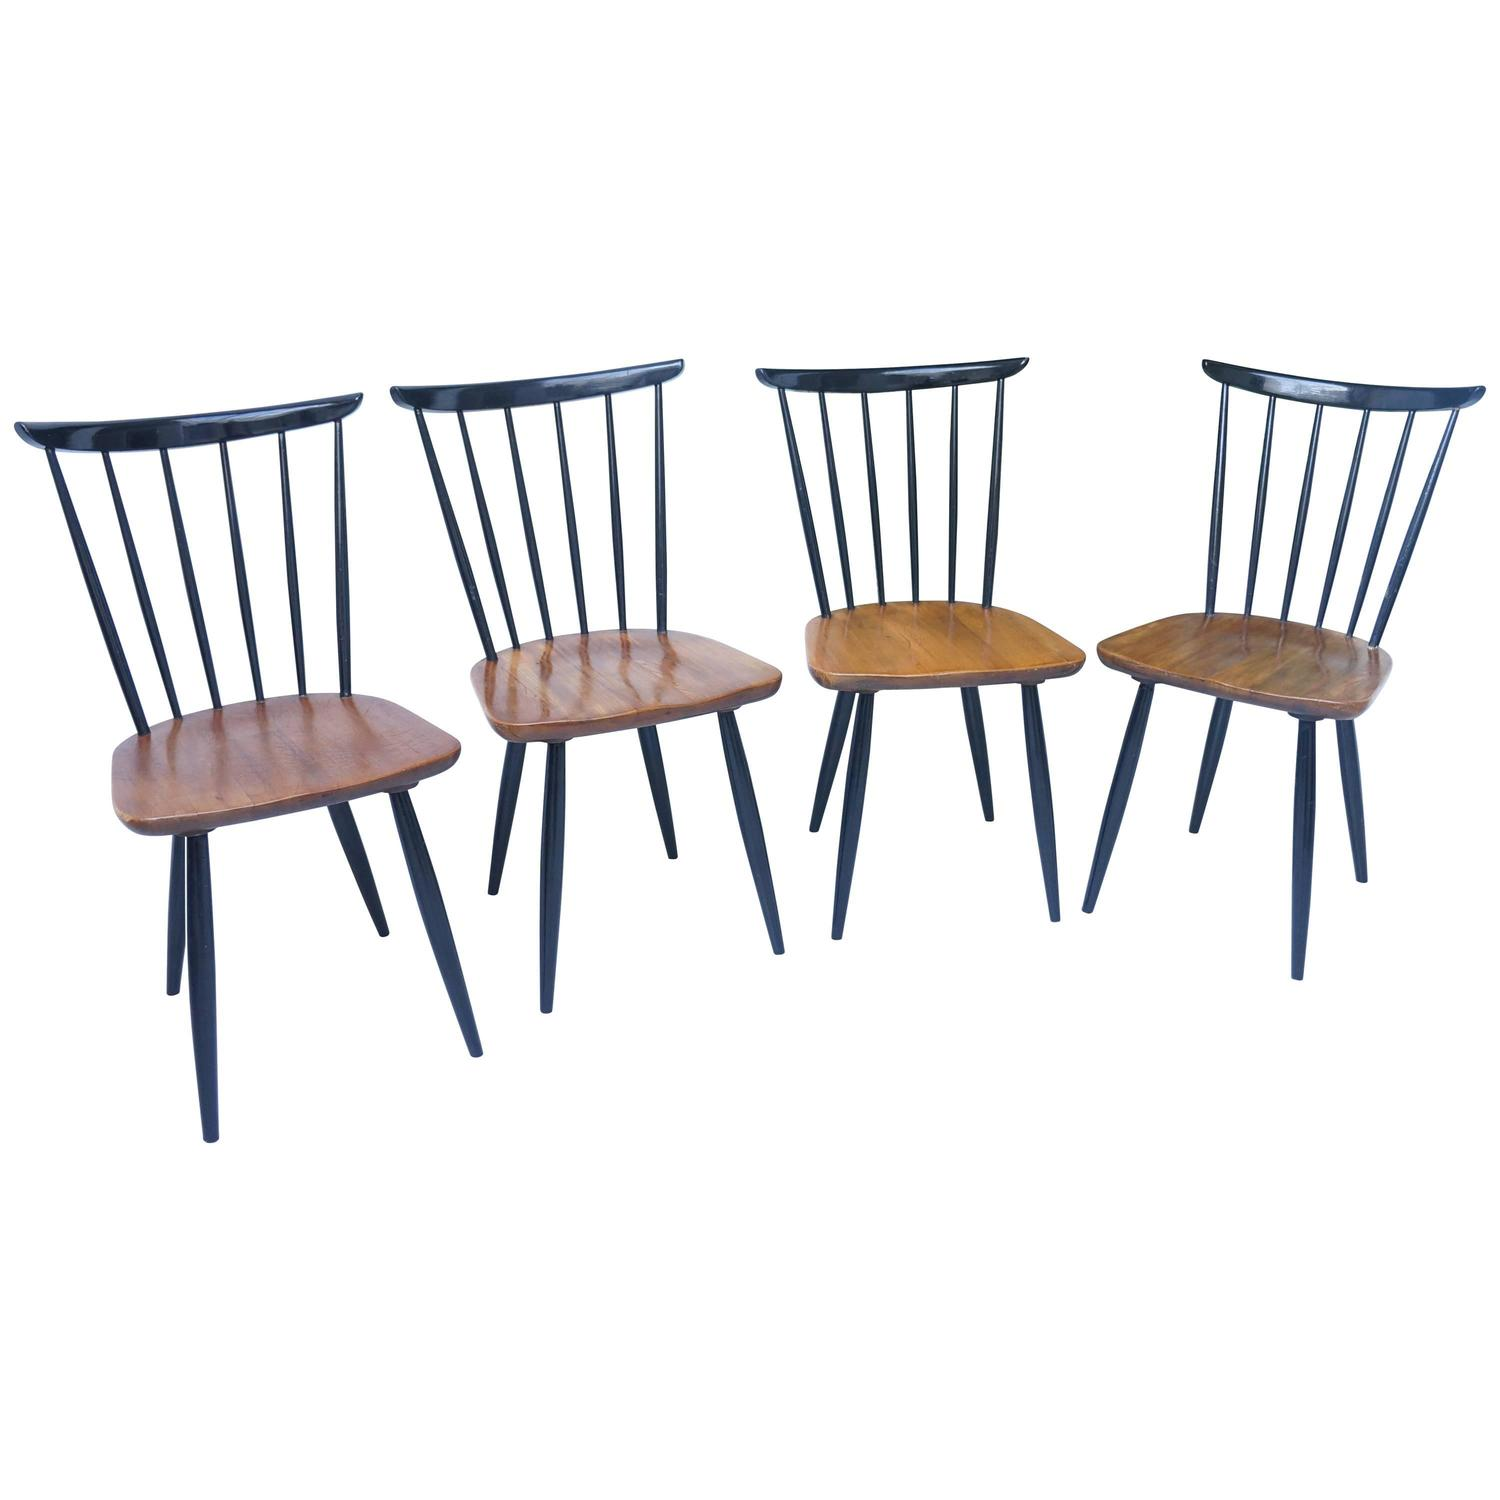 Four mid century wooden spindle back chairs s in